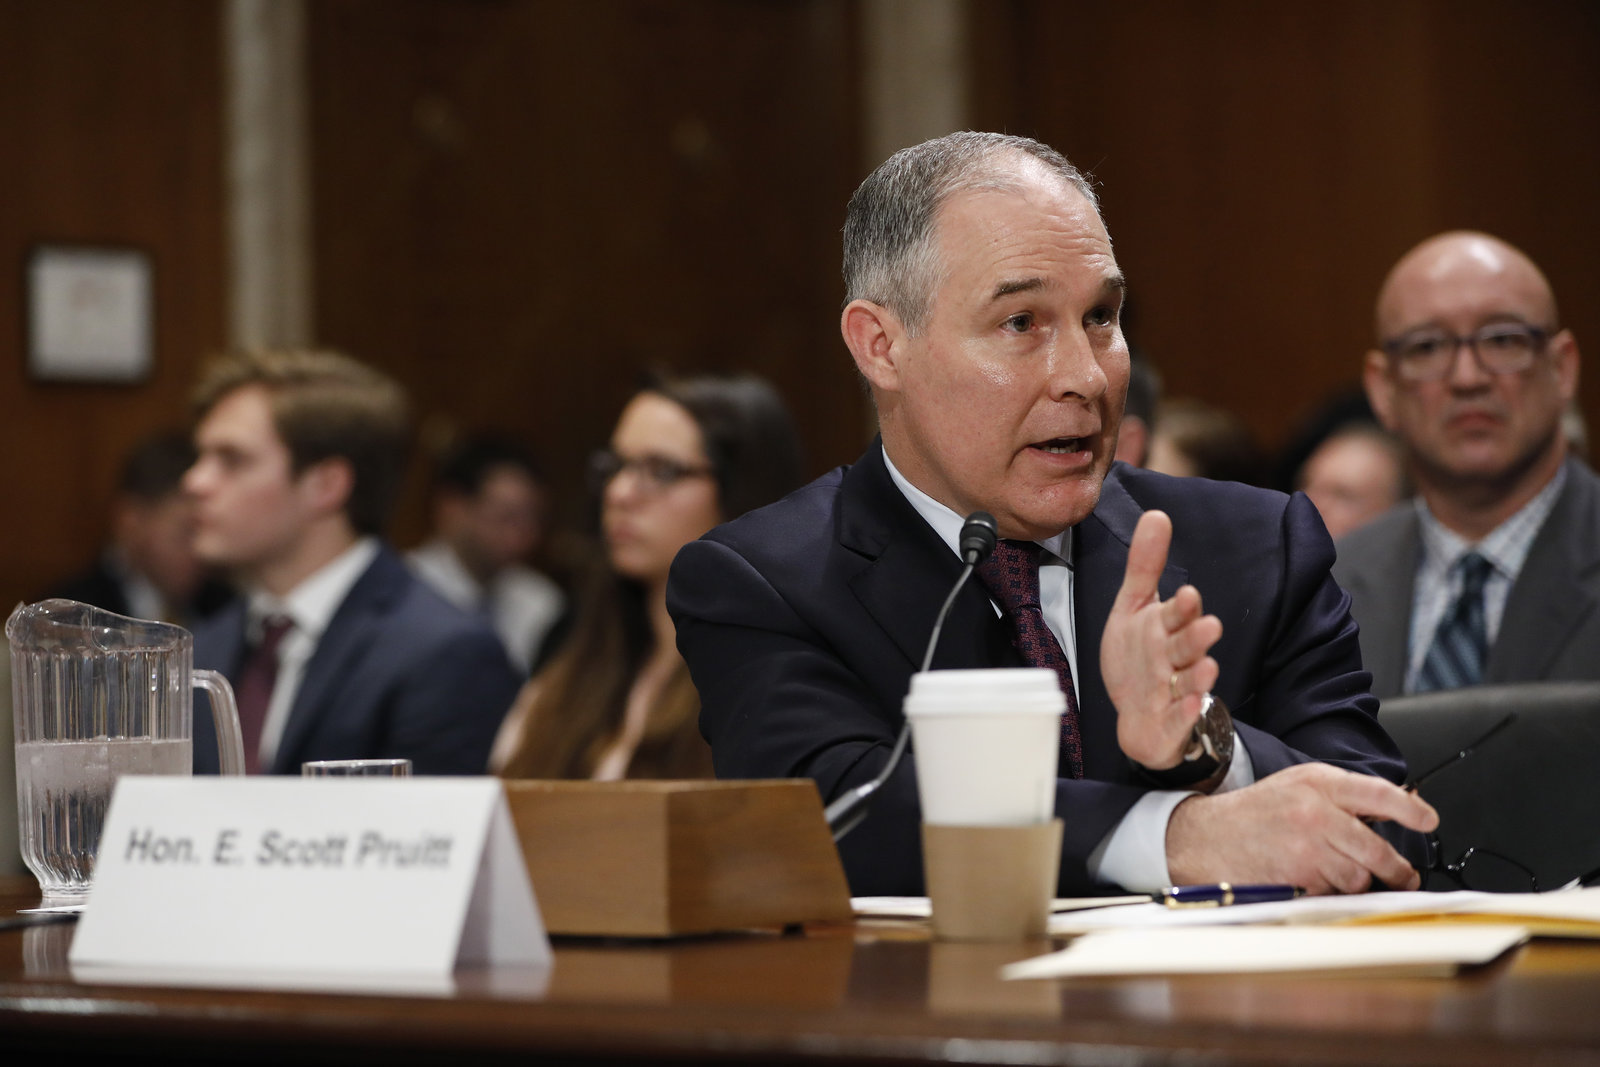 Scott Pruitt answers questions at his Senate confirmation hearing for EPA administrator